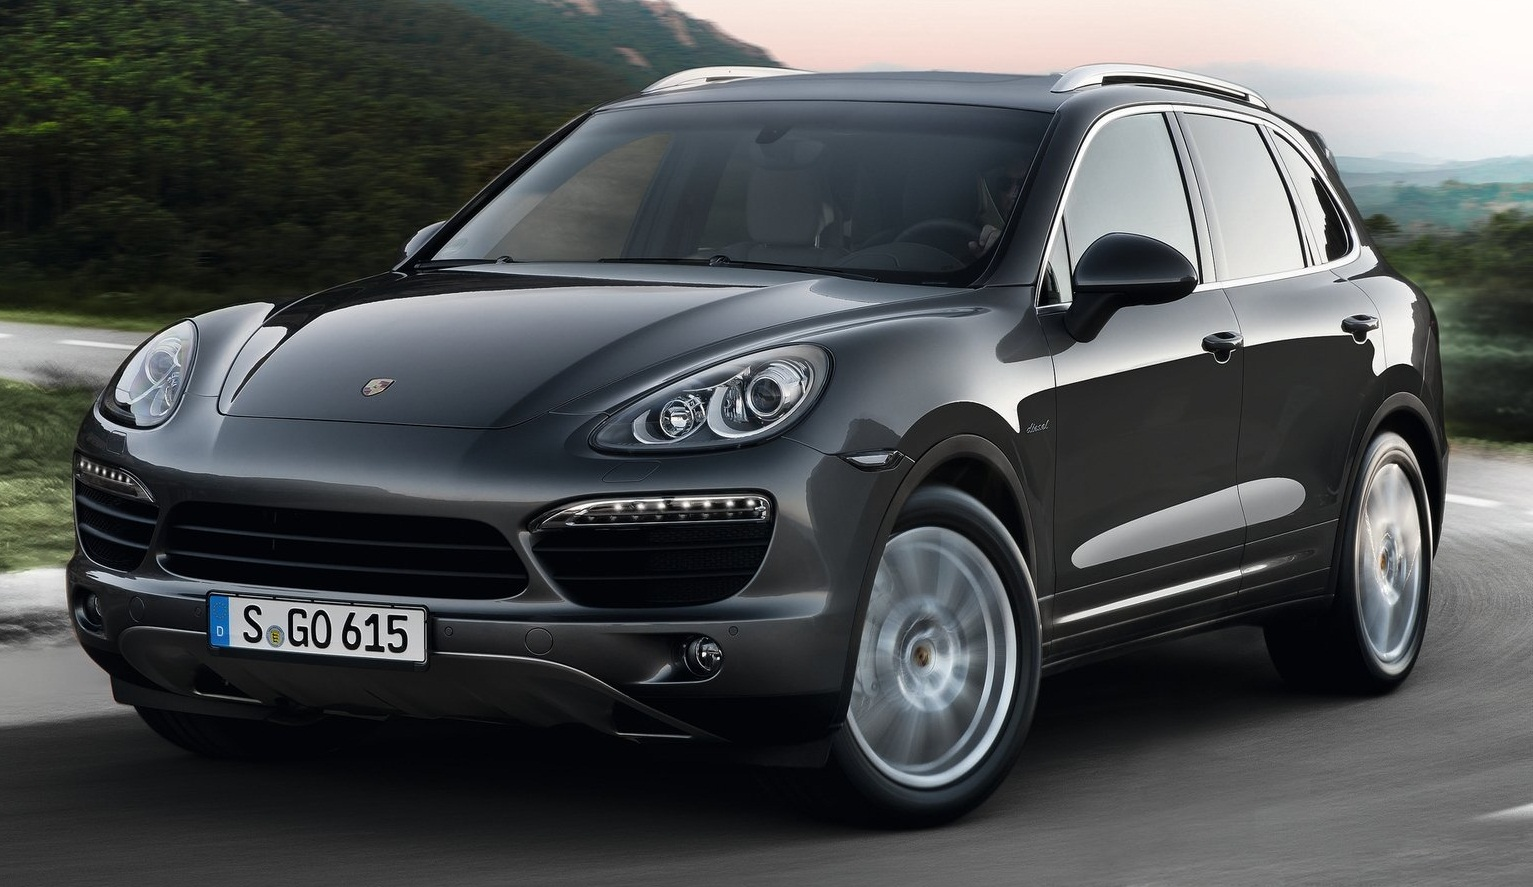 2013 porsche cayenne s diesel fixcars cars news. Black Bedroom Furniture Sets. Home Design Ideas